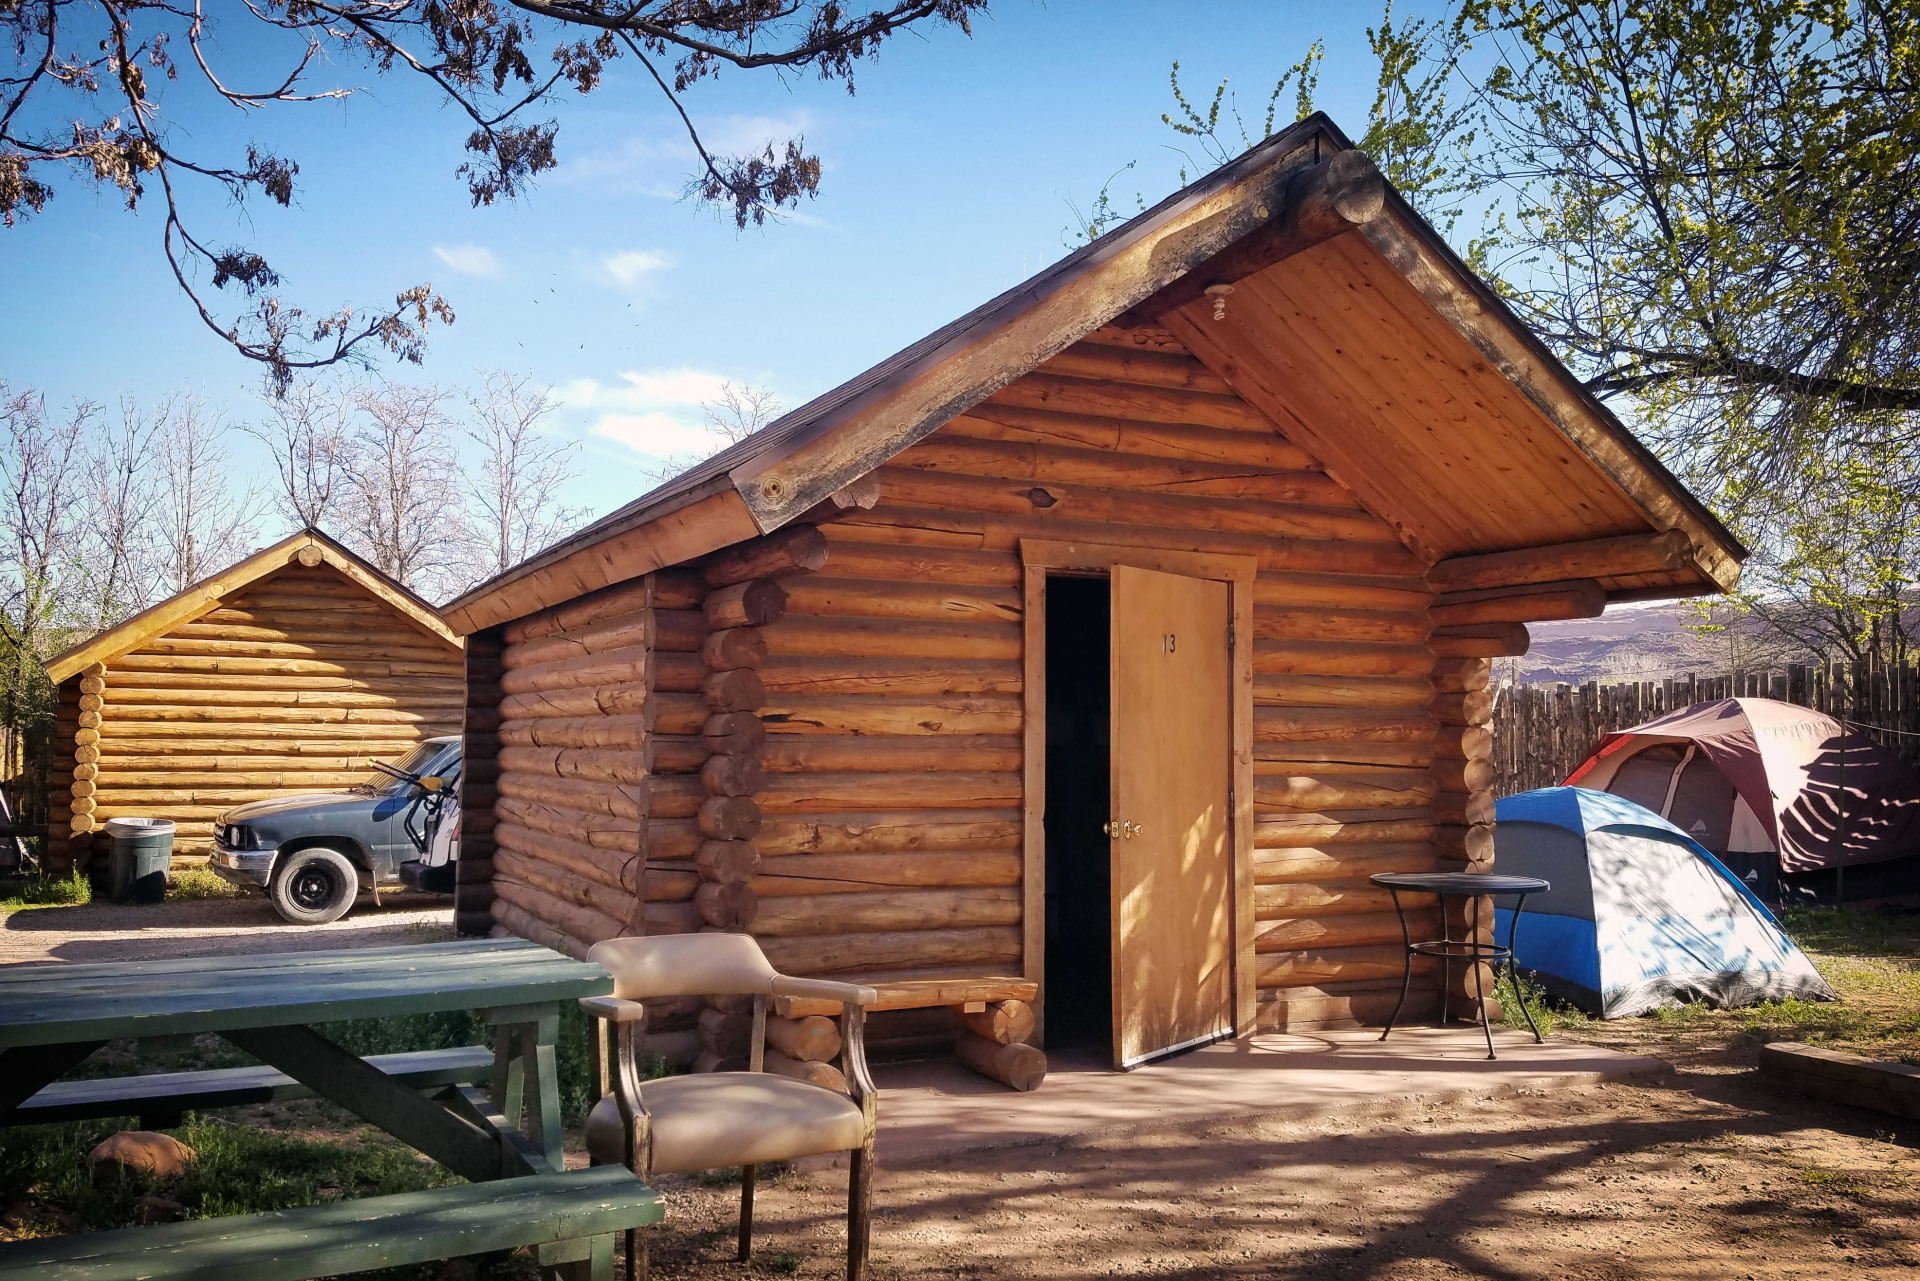 a small cabin at the Lazy Lizard Hostel in moab, utah